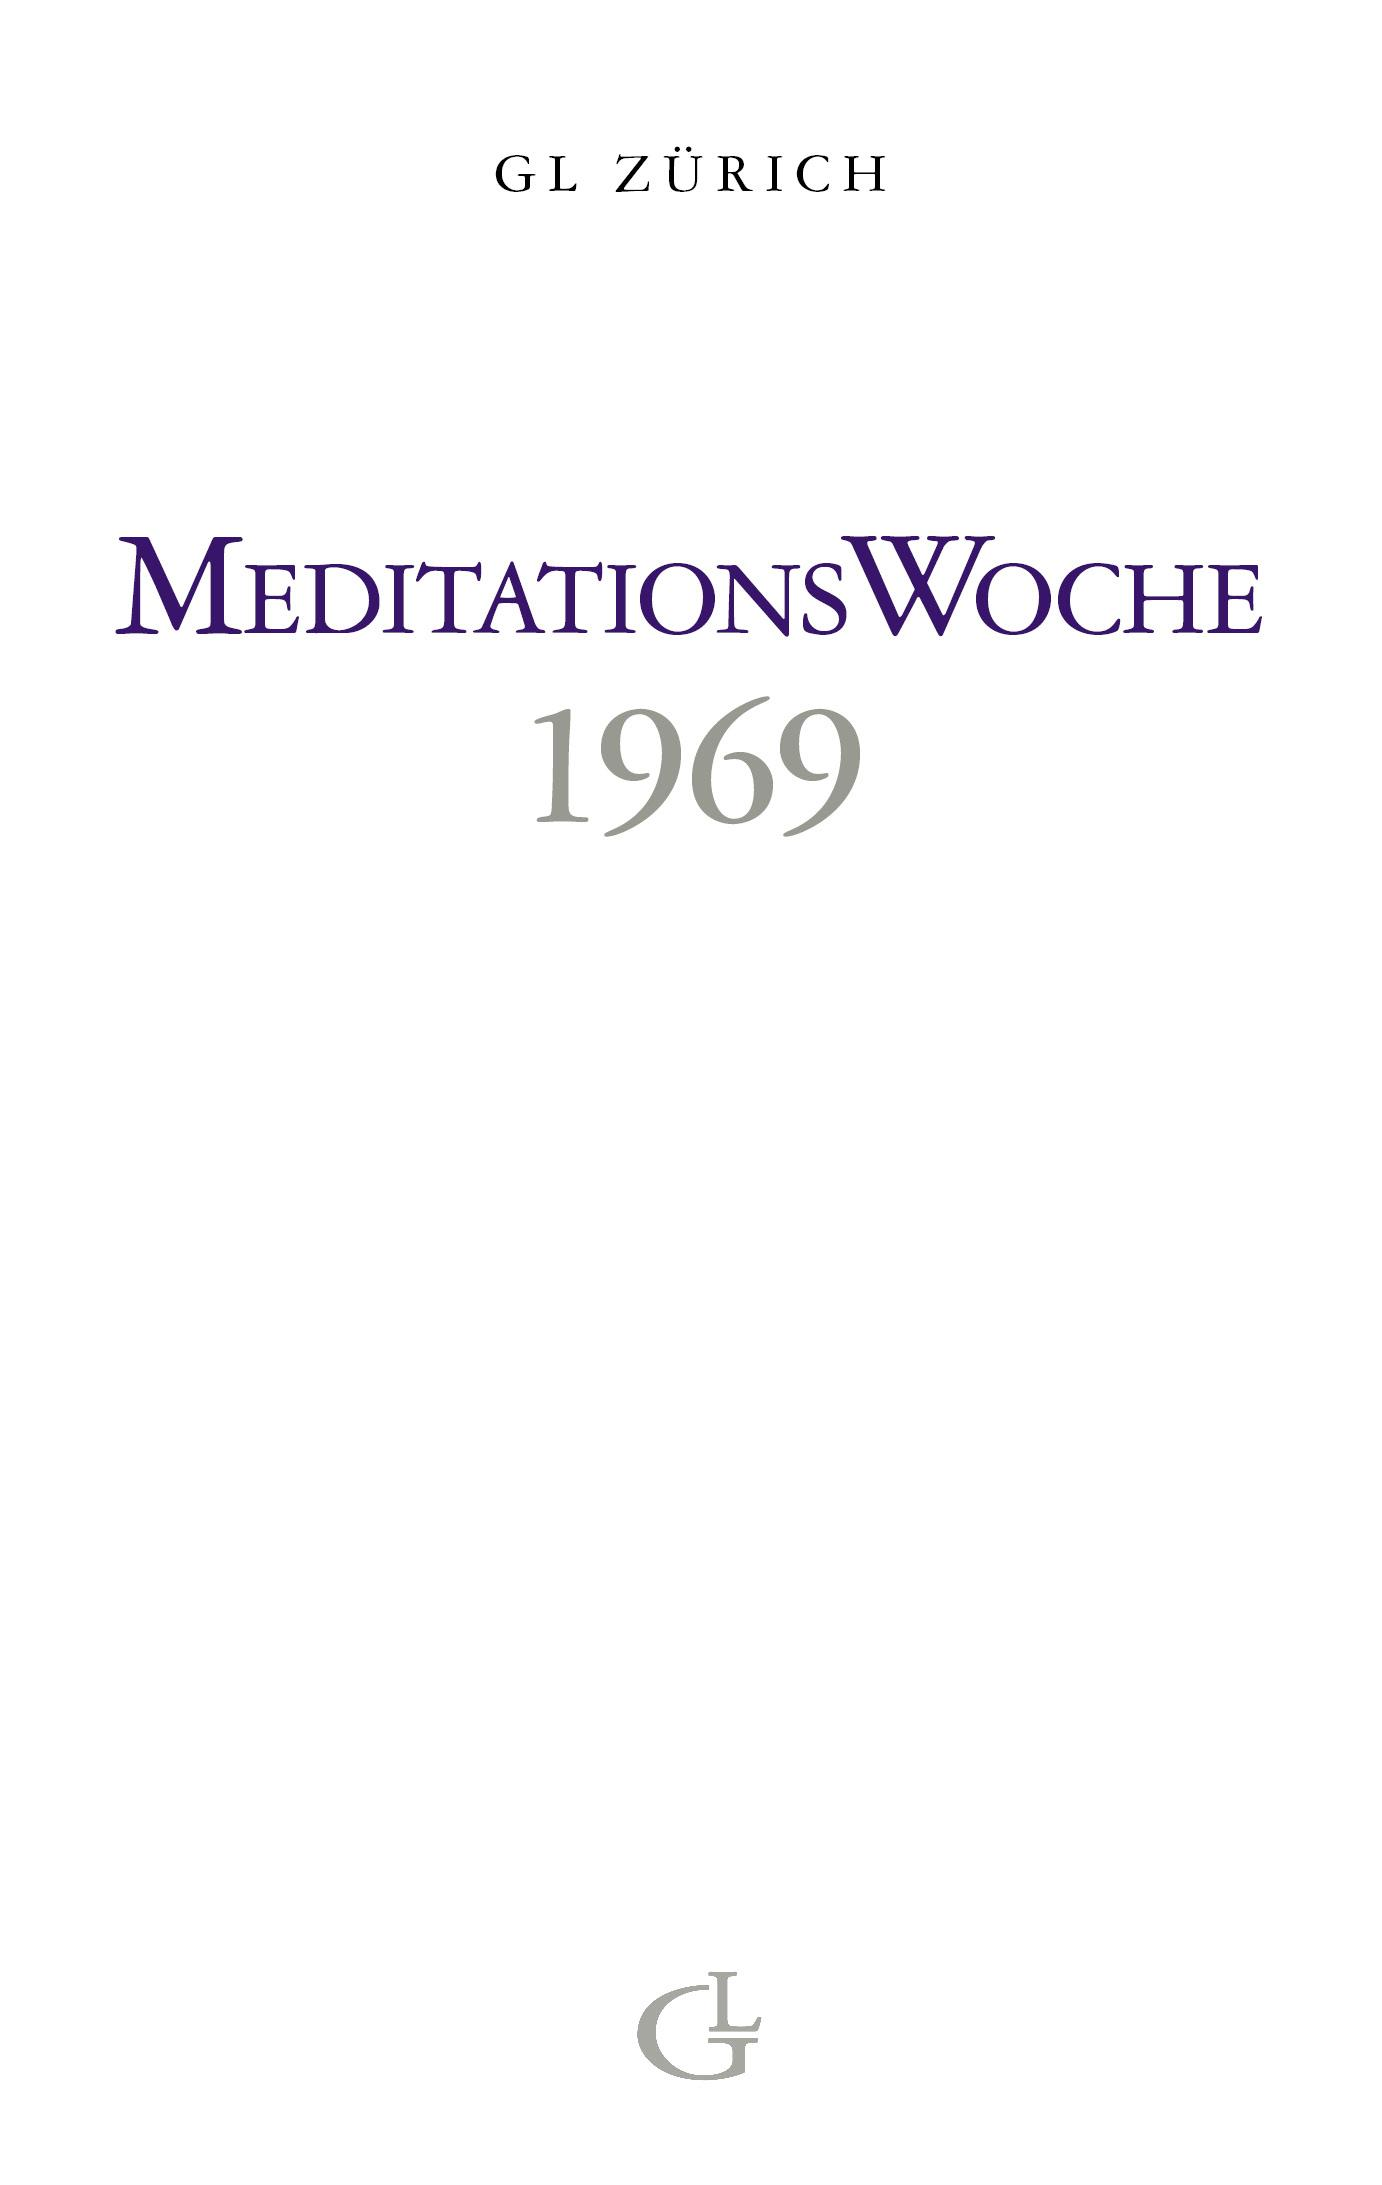 Cover des Buches Meditationswoche 1969 von Medium Beatrice Brunner